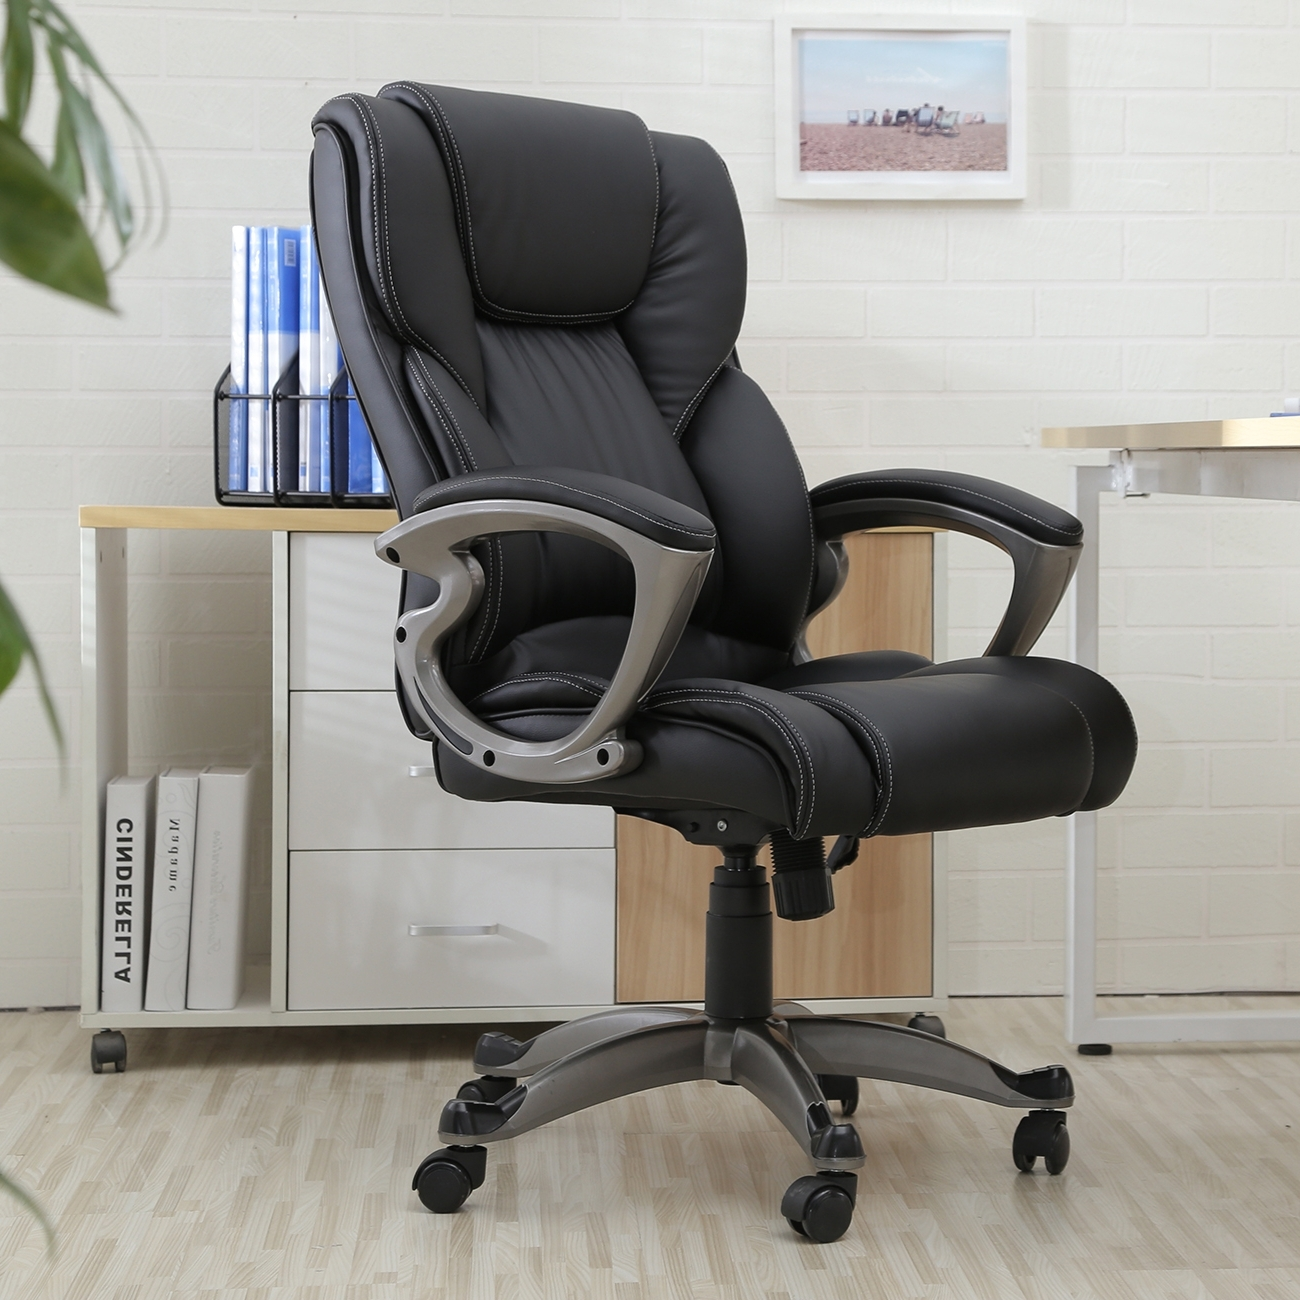 Executive Office Chair High Back Task Ergonomic Computer Desk In Well Known Ergonomic Executive Office Chairs (Gallery 2 of 20)